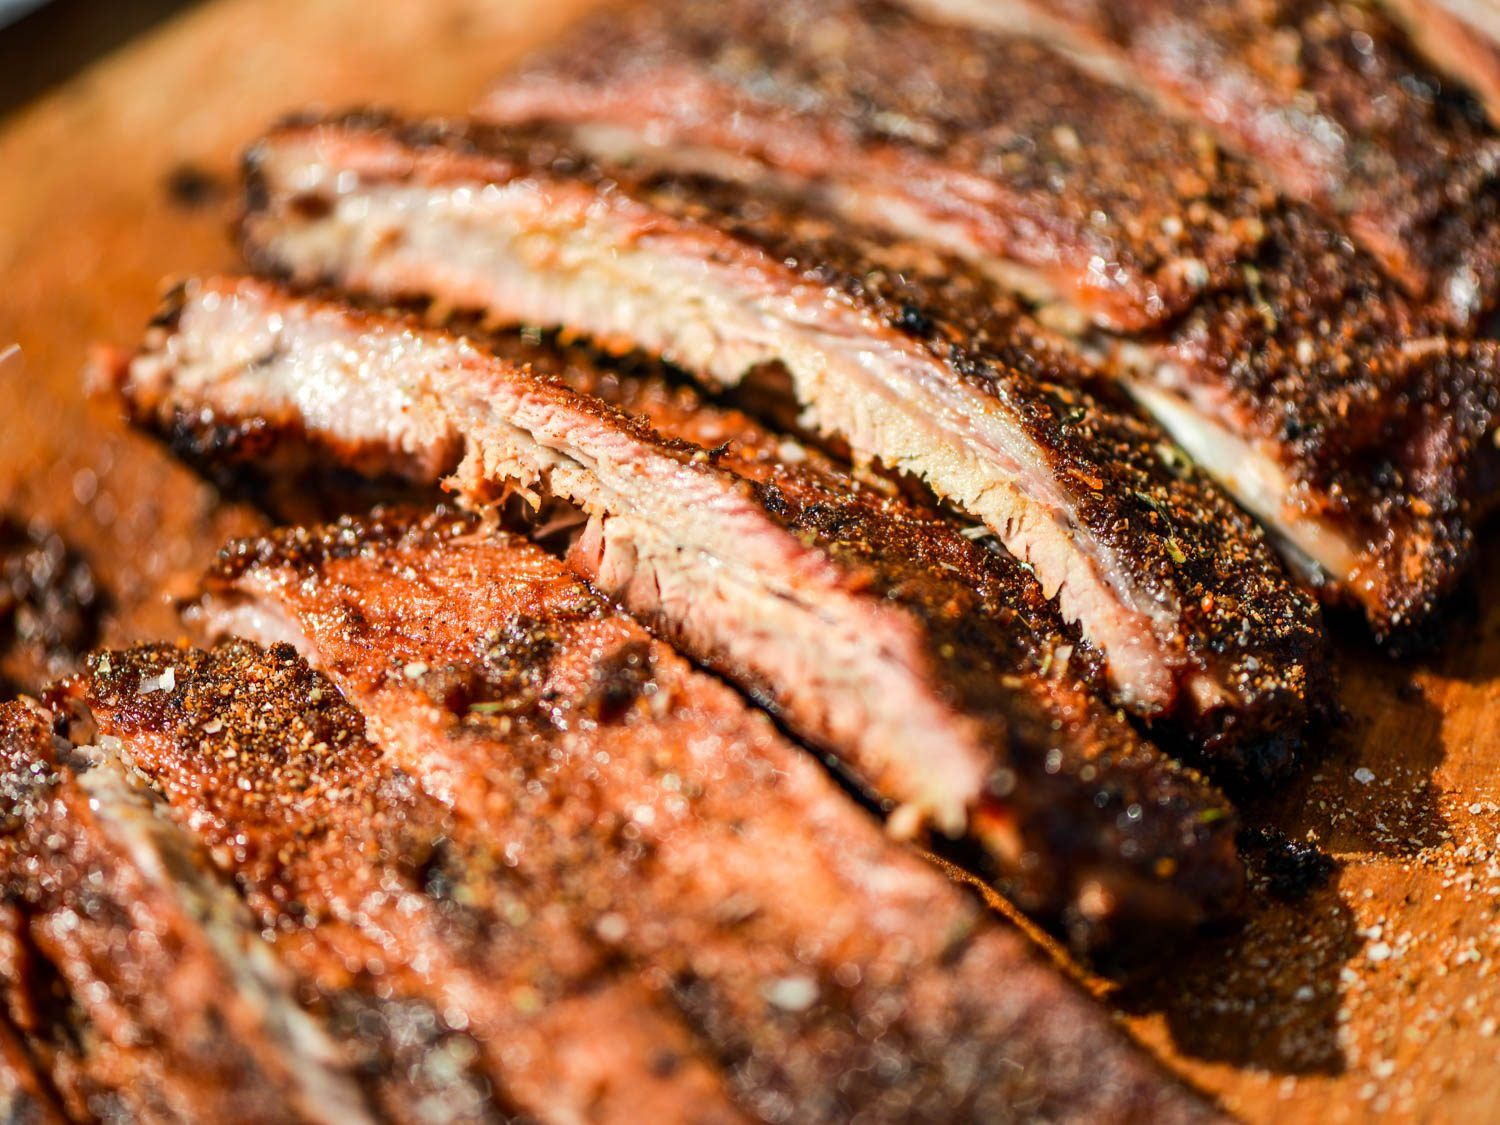 regional barbecue styles | Memphis dry rub | how to smoke ribs | bbq champs academy